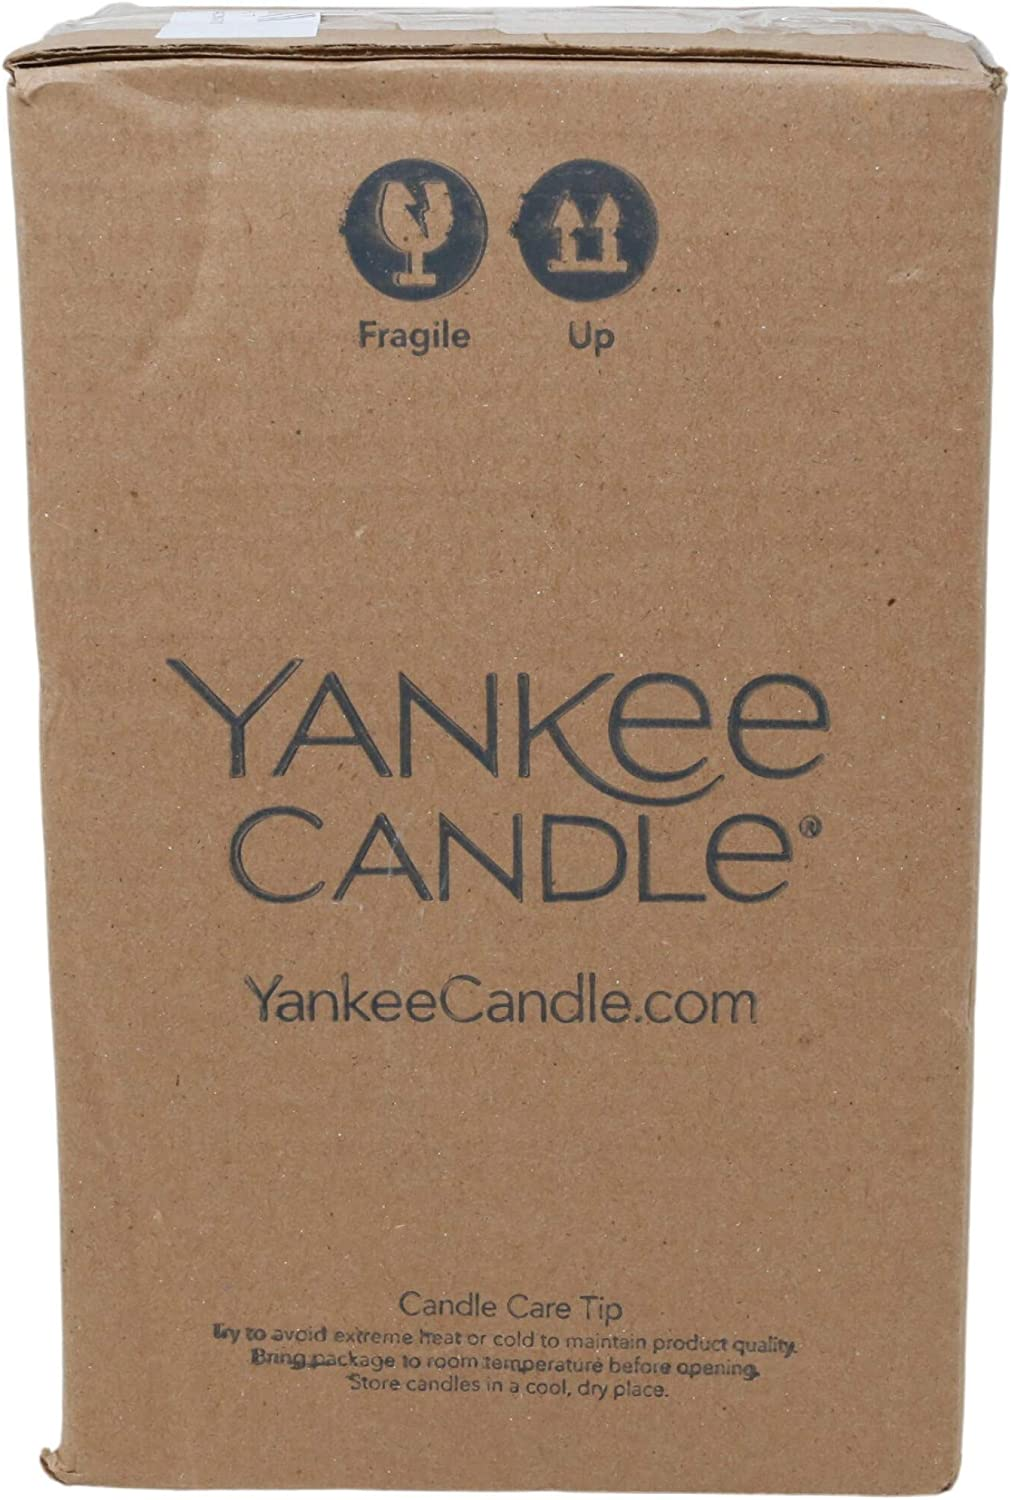 Yankee Candle 22-Ounce Jar Scented Candle, Large, Macintosh